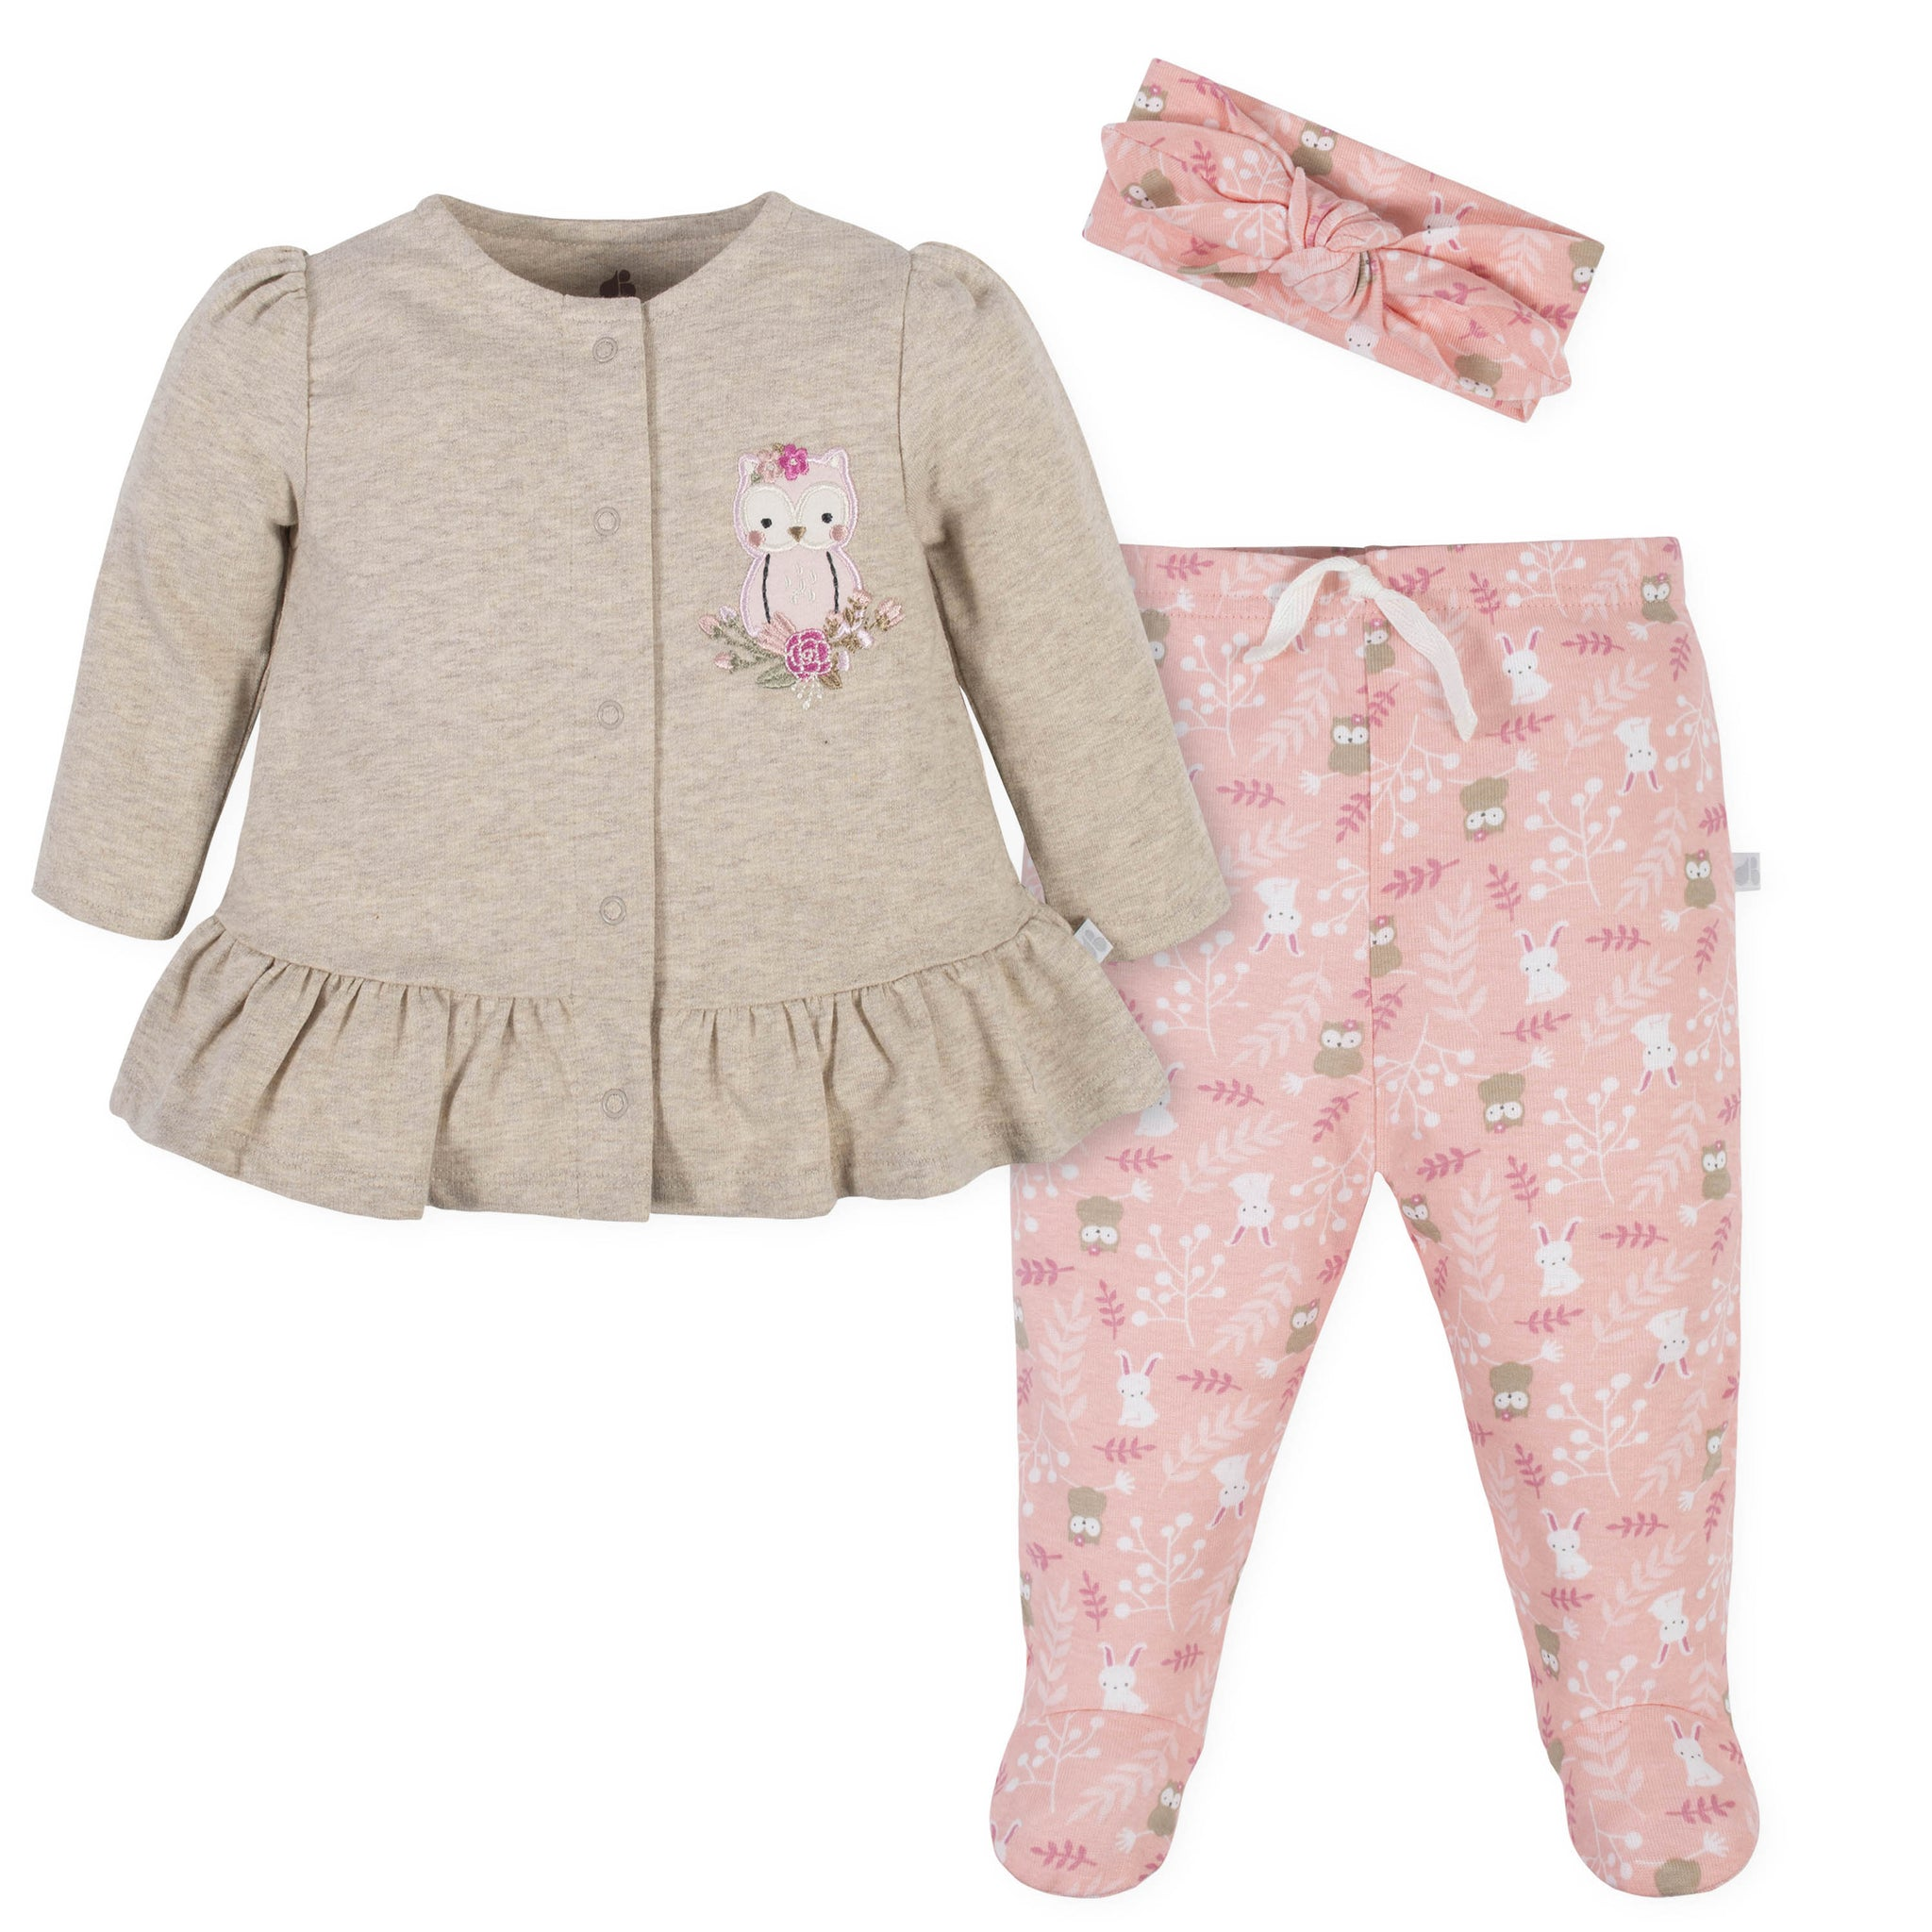 Baby Girls 3-Piece Top, Pants, and Headband Set-Gerber Childrenswear